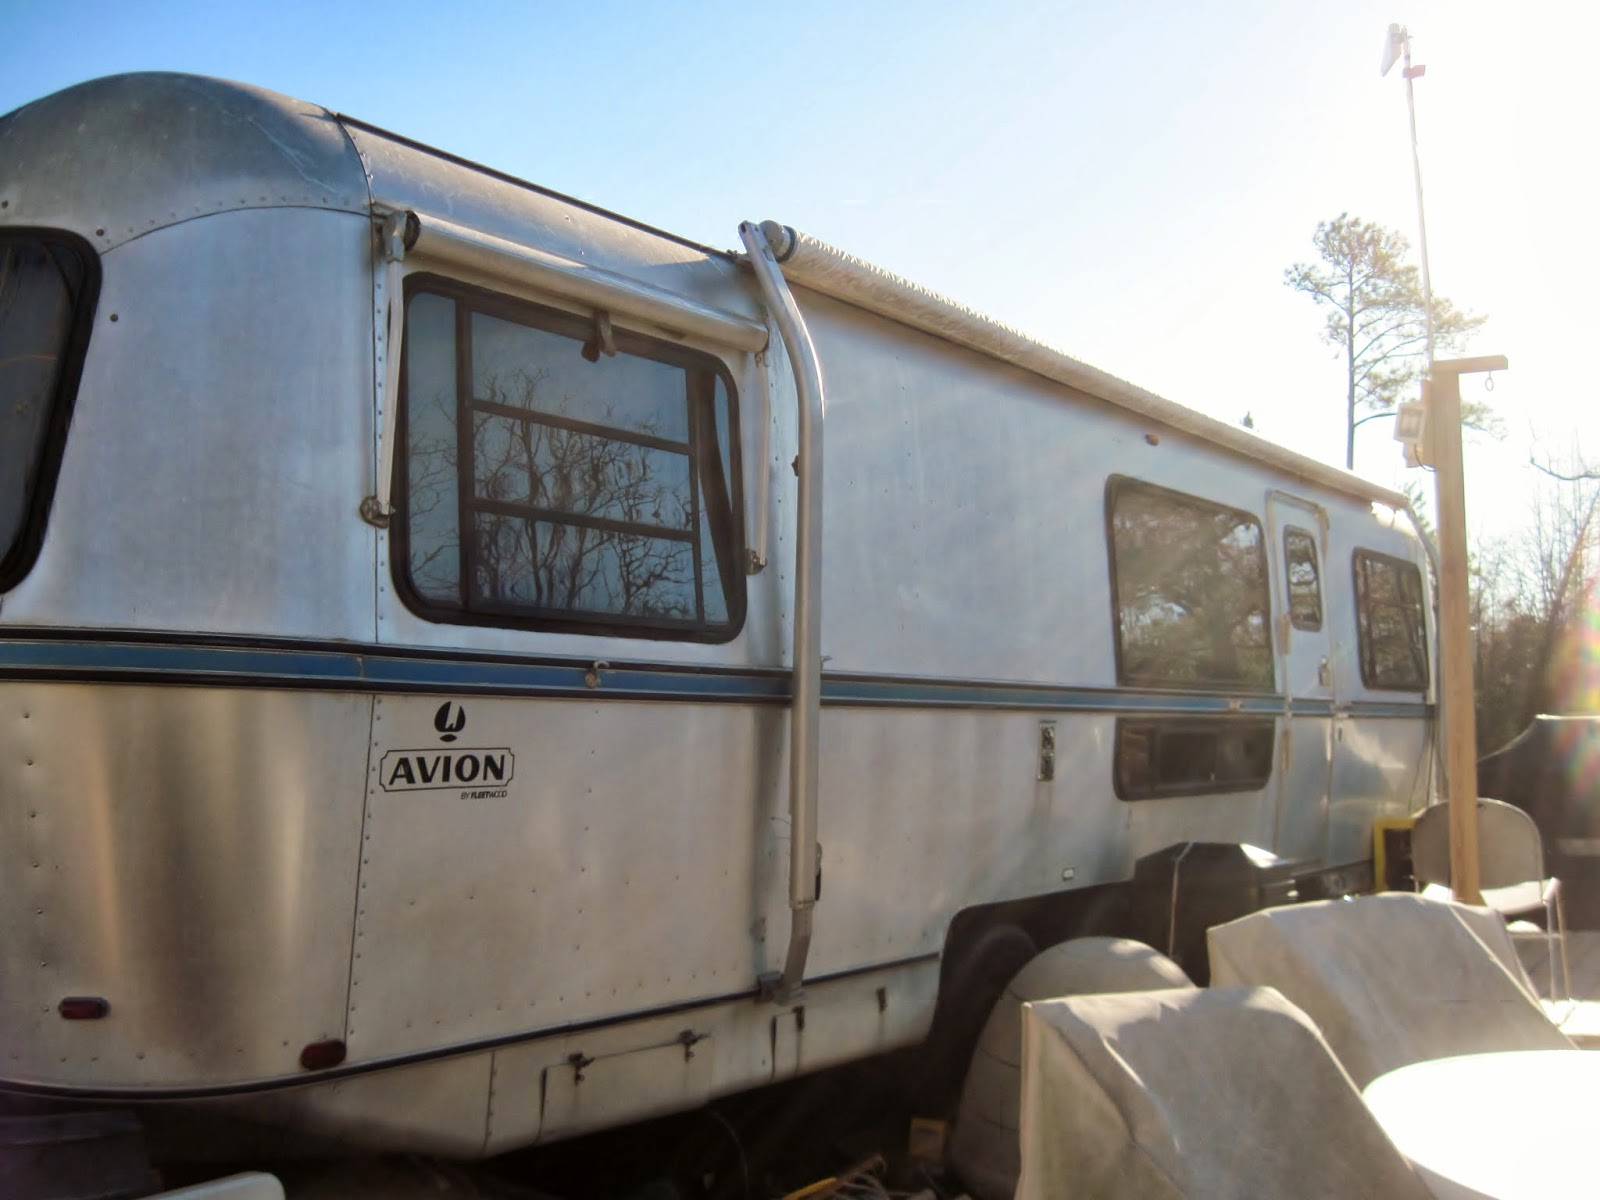 Avion RV trailer